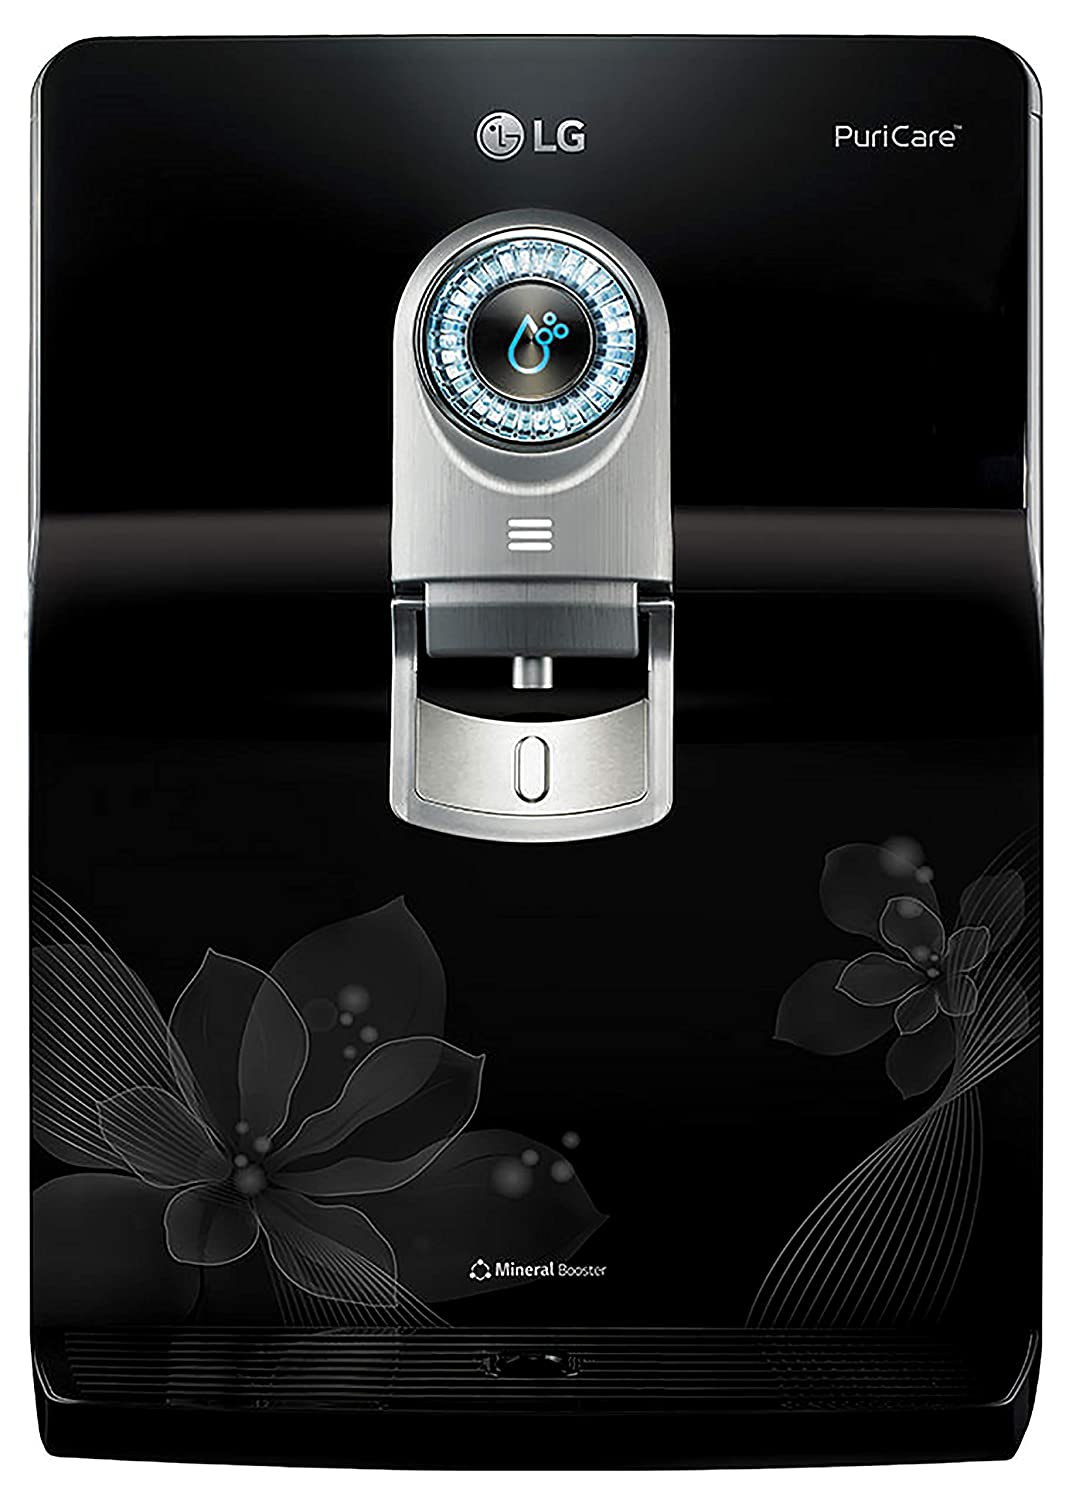 LG A2E Plus - WW180EP 8L RO+UV+UF Water Purifier With Multi-Stage Filtration Image